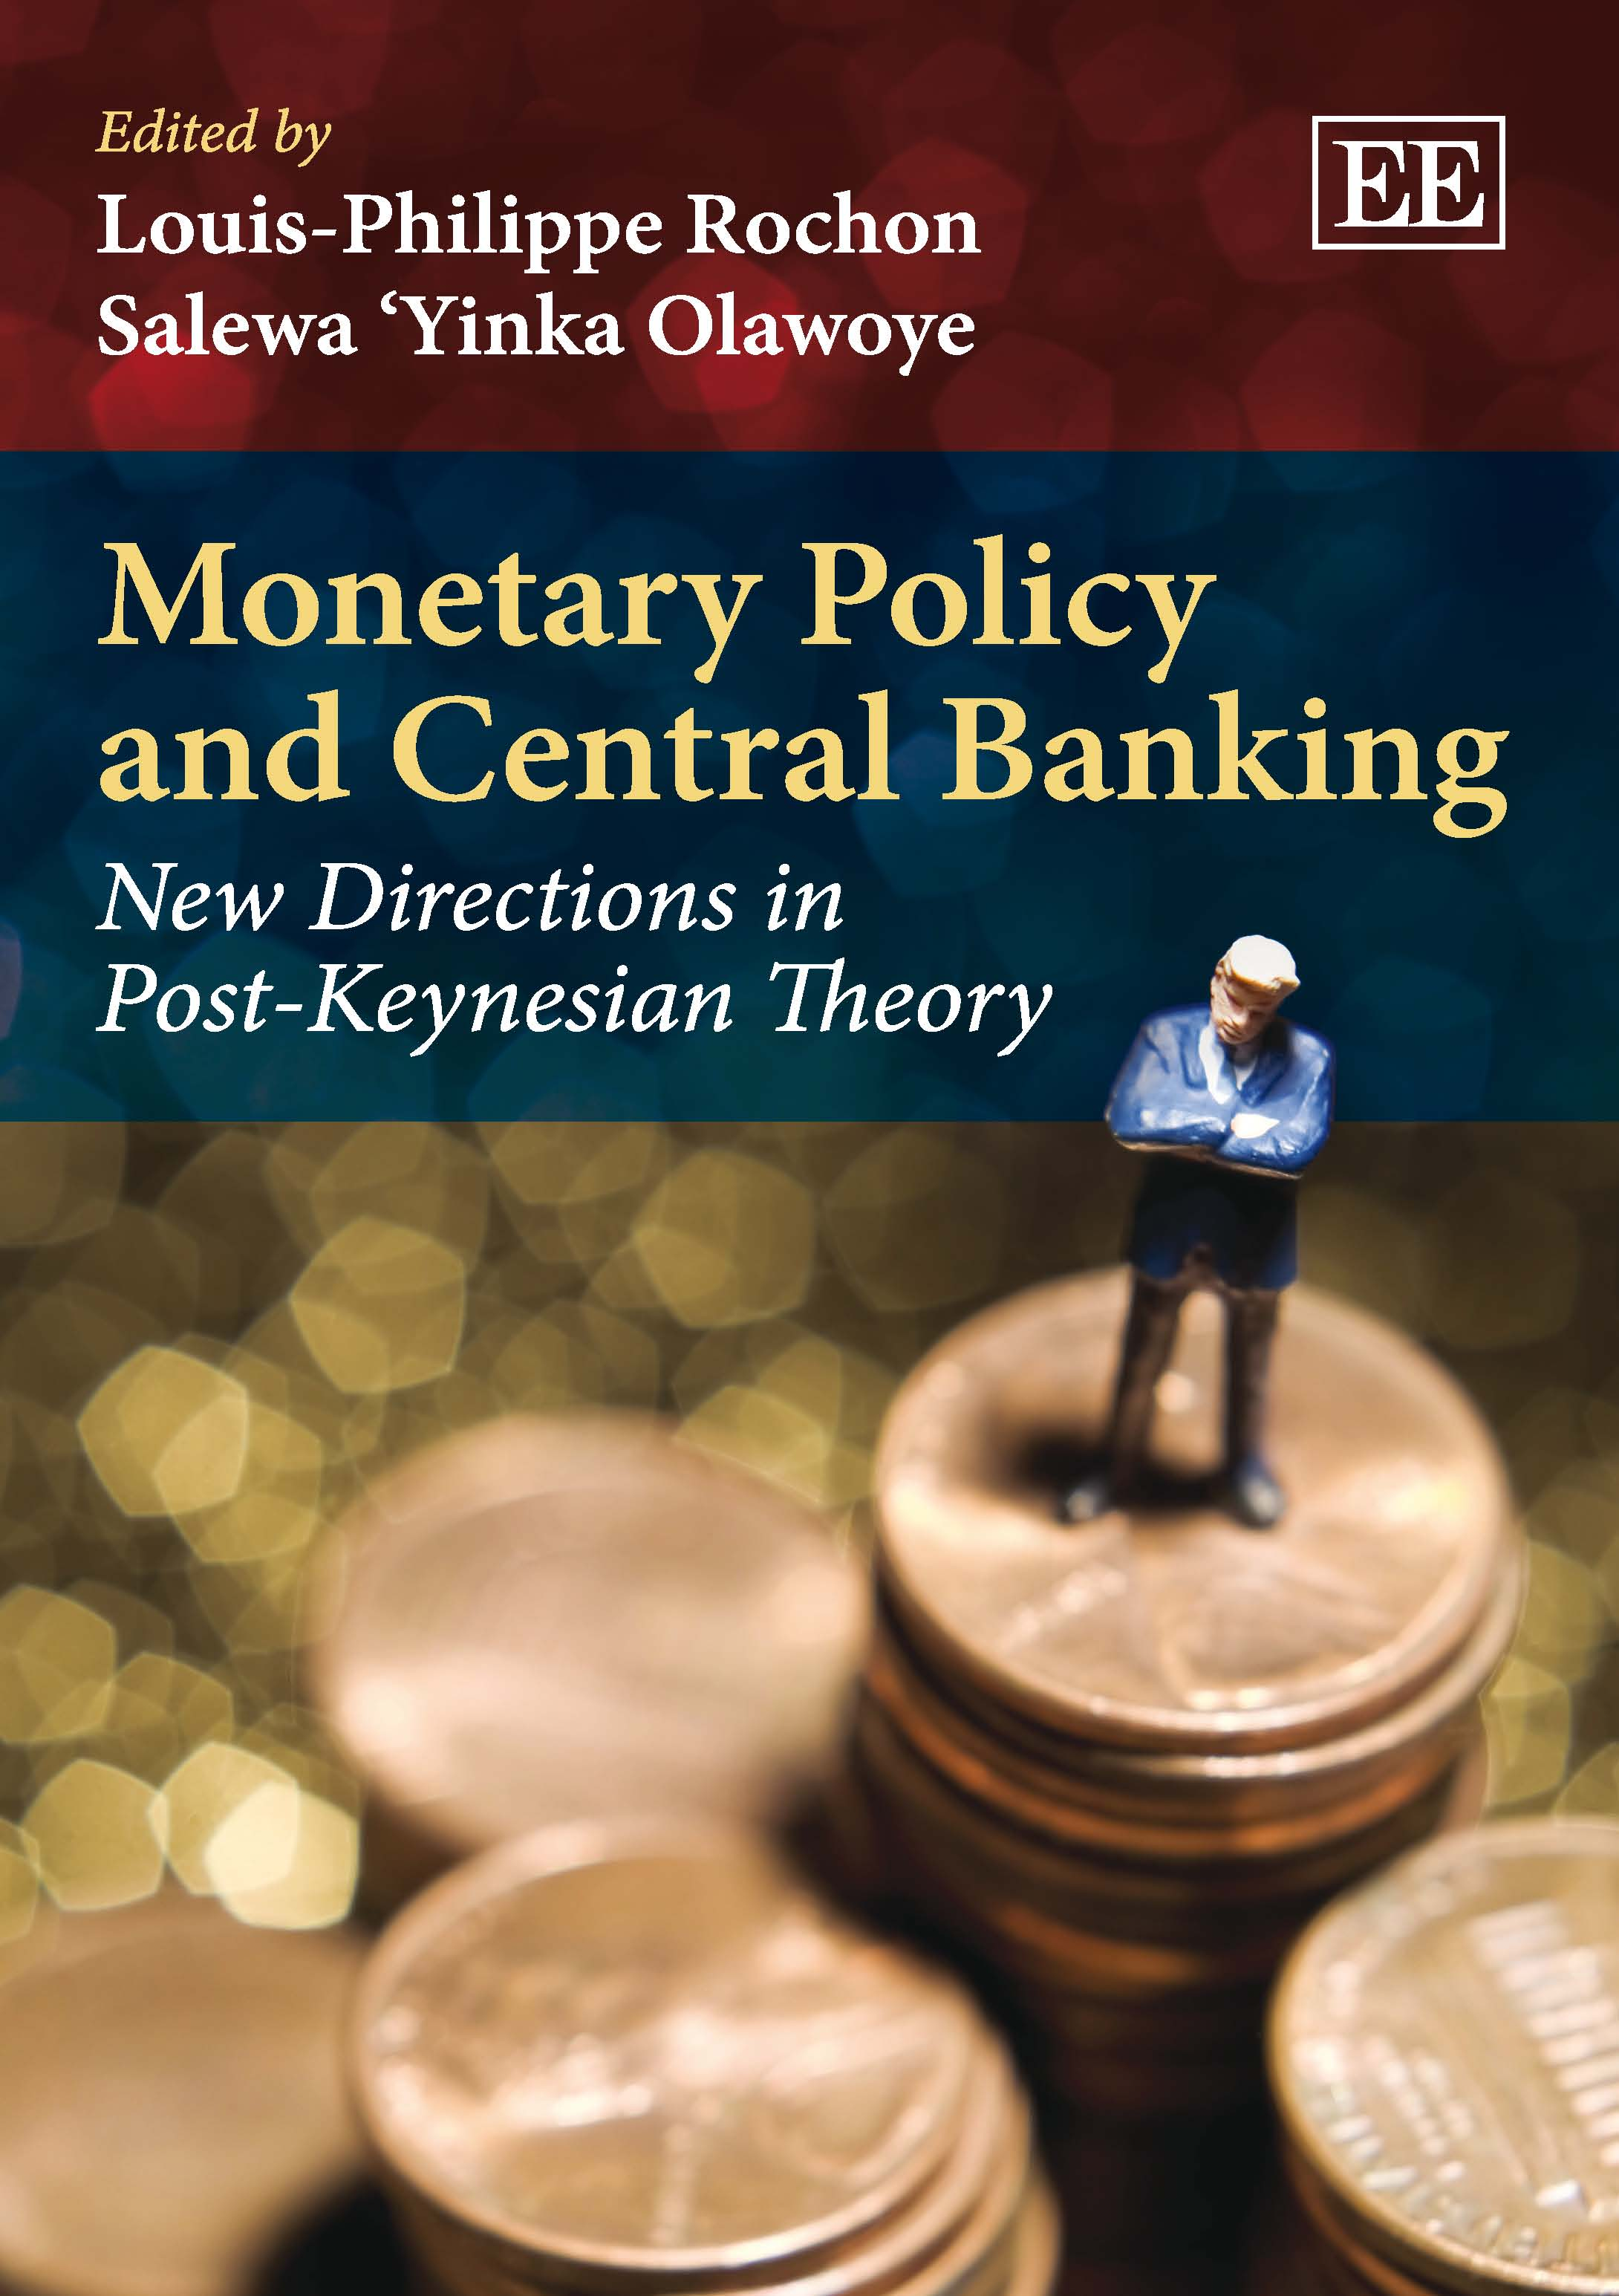 Download Ebook Monetary Policy and Central Banking by Louis-Philippe Rochon Pdf